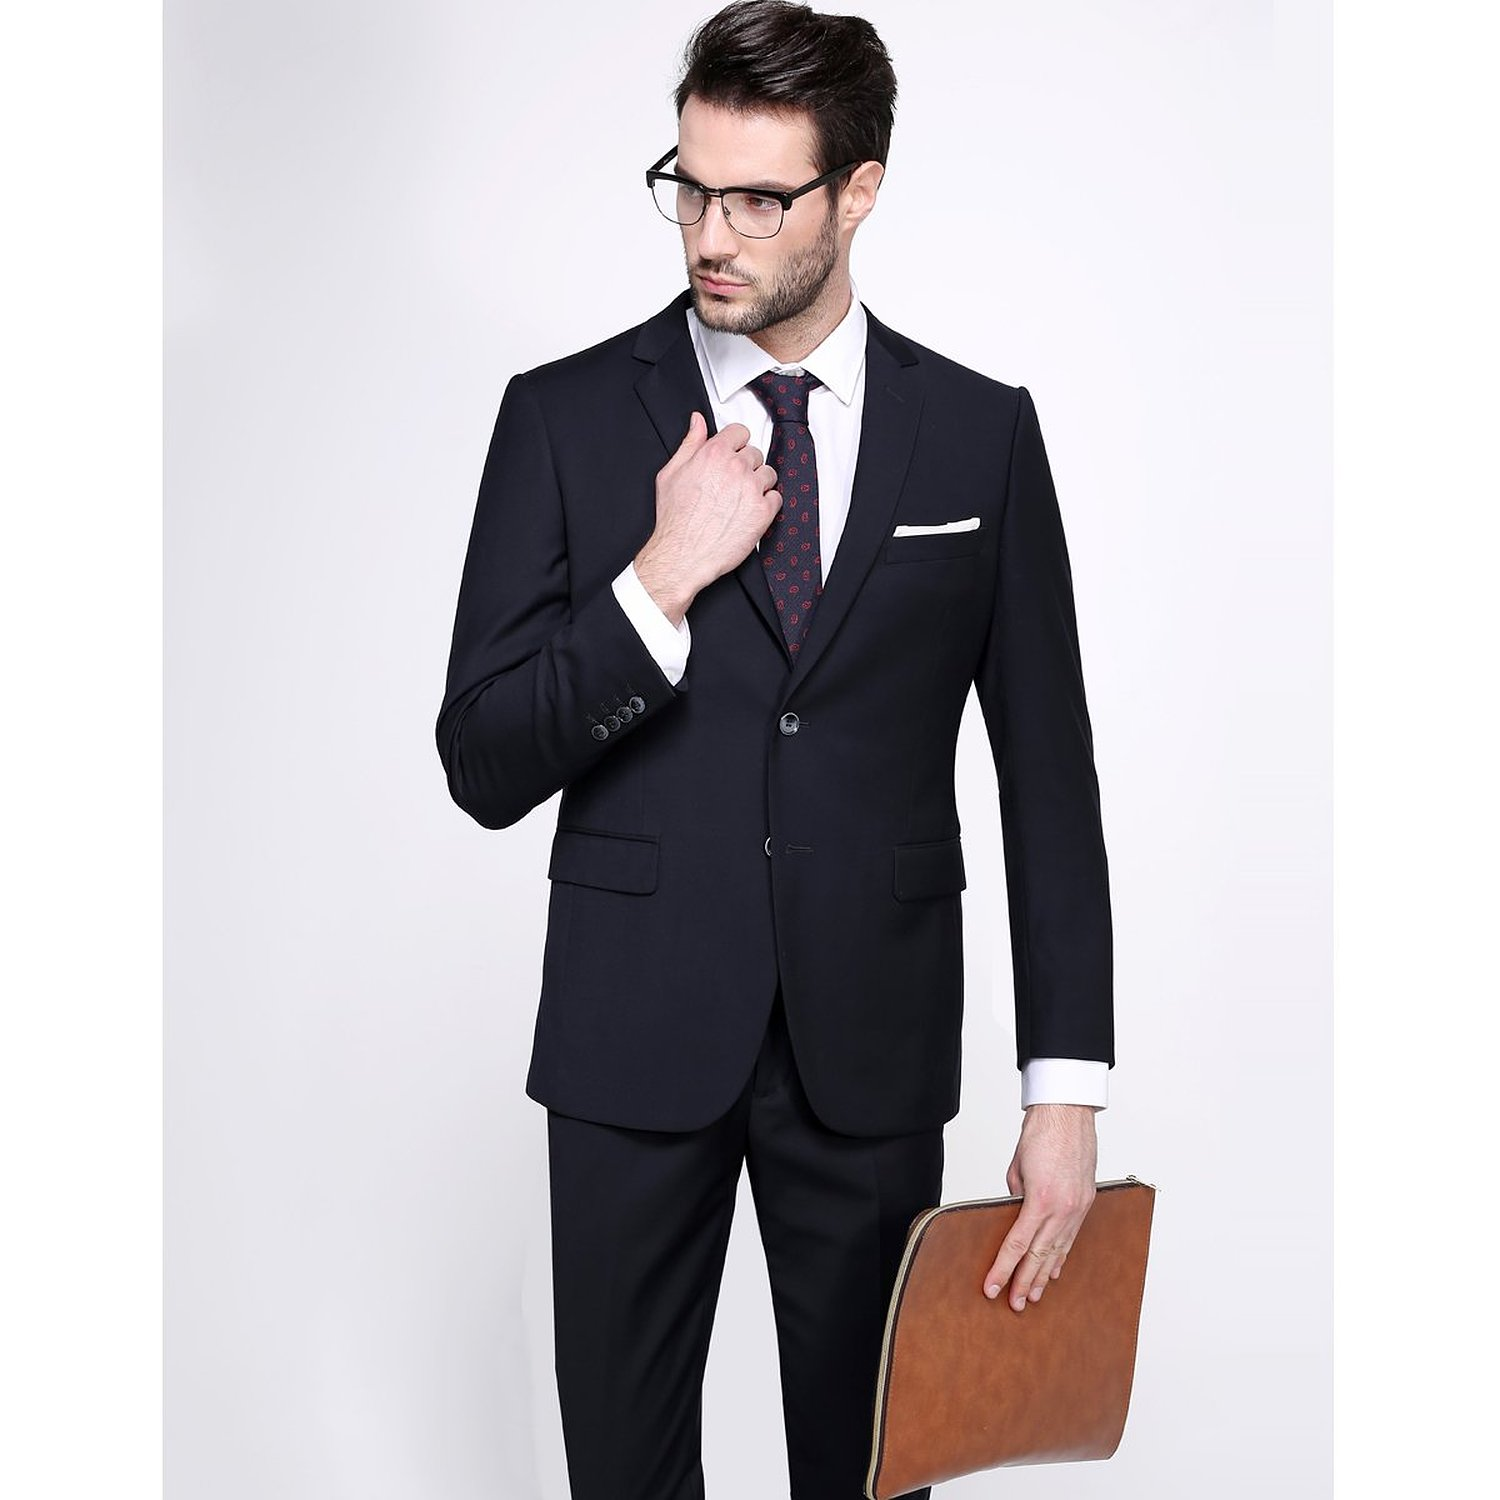 Fashion week Business full suit for men photo for girls